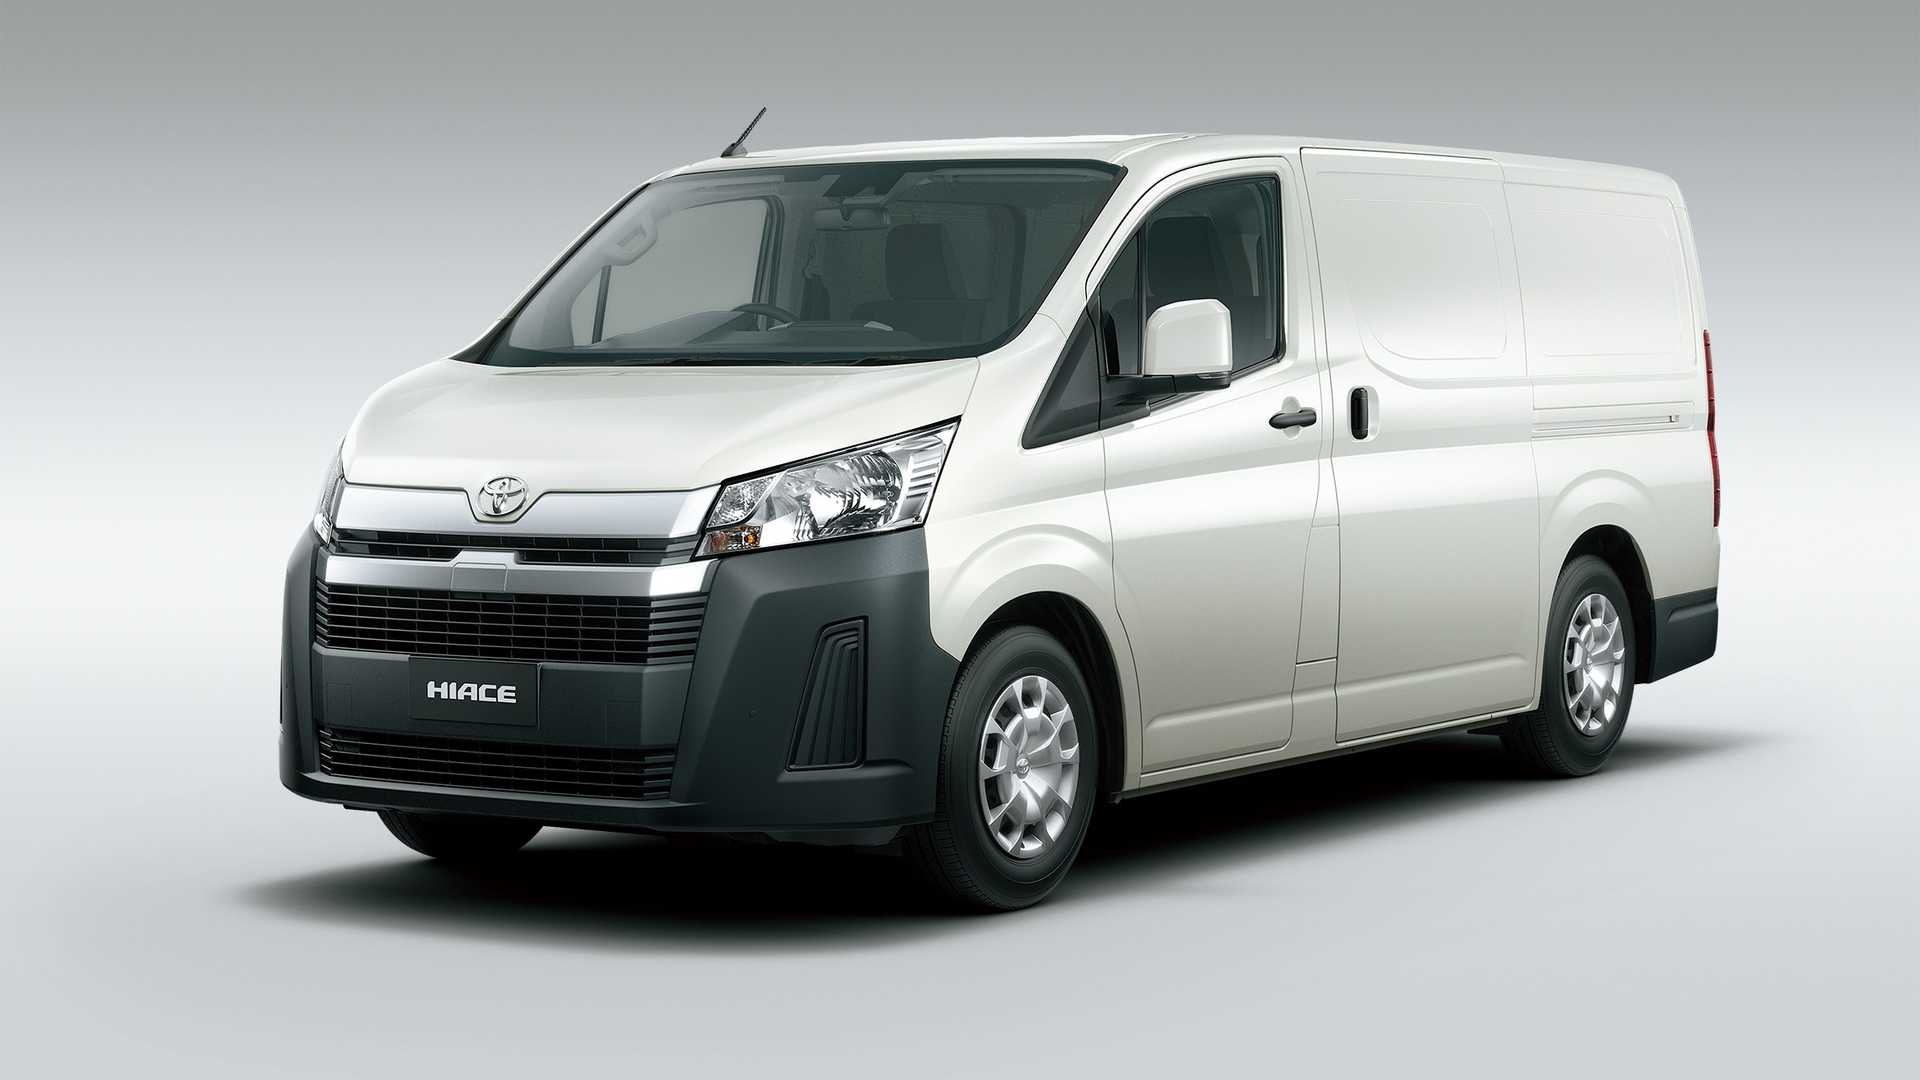 61dbe83fb1 2019 Toyota Hiace Unveiled With Up To 17 Seats